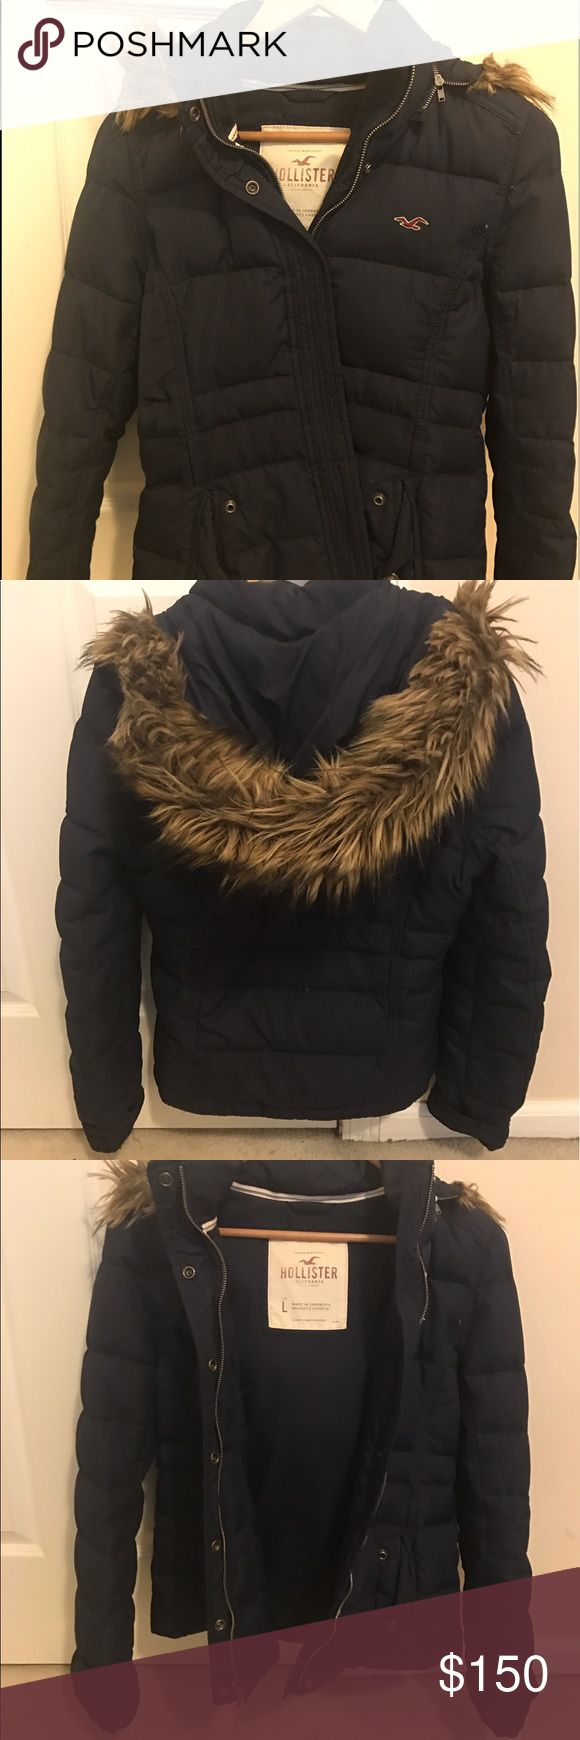 Hollister Jacket Condition: Rarely worn; great condition  Brand/Style: Hollister  Color: Navy blue Description: Warm navy blue jacket, medium size, long enough to cover hips, fur lined hood, zipper and buttons for closing, buttons on pockets   Material: Shell: 100% polyester; fur: 65% waterfowl feather, 35% down/duvet Hollister Jackets & Coats